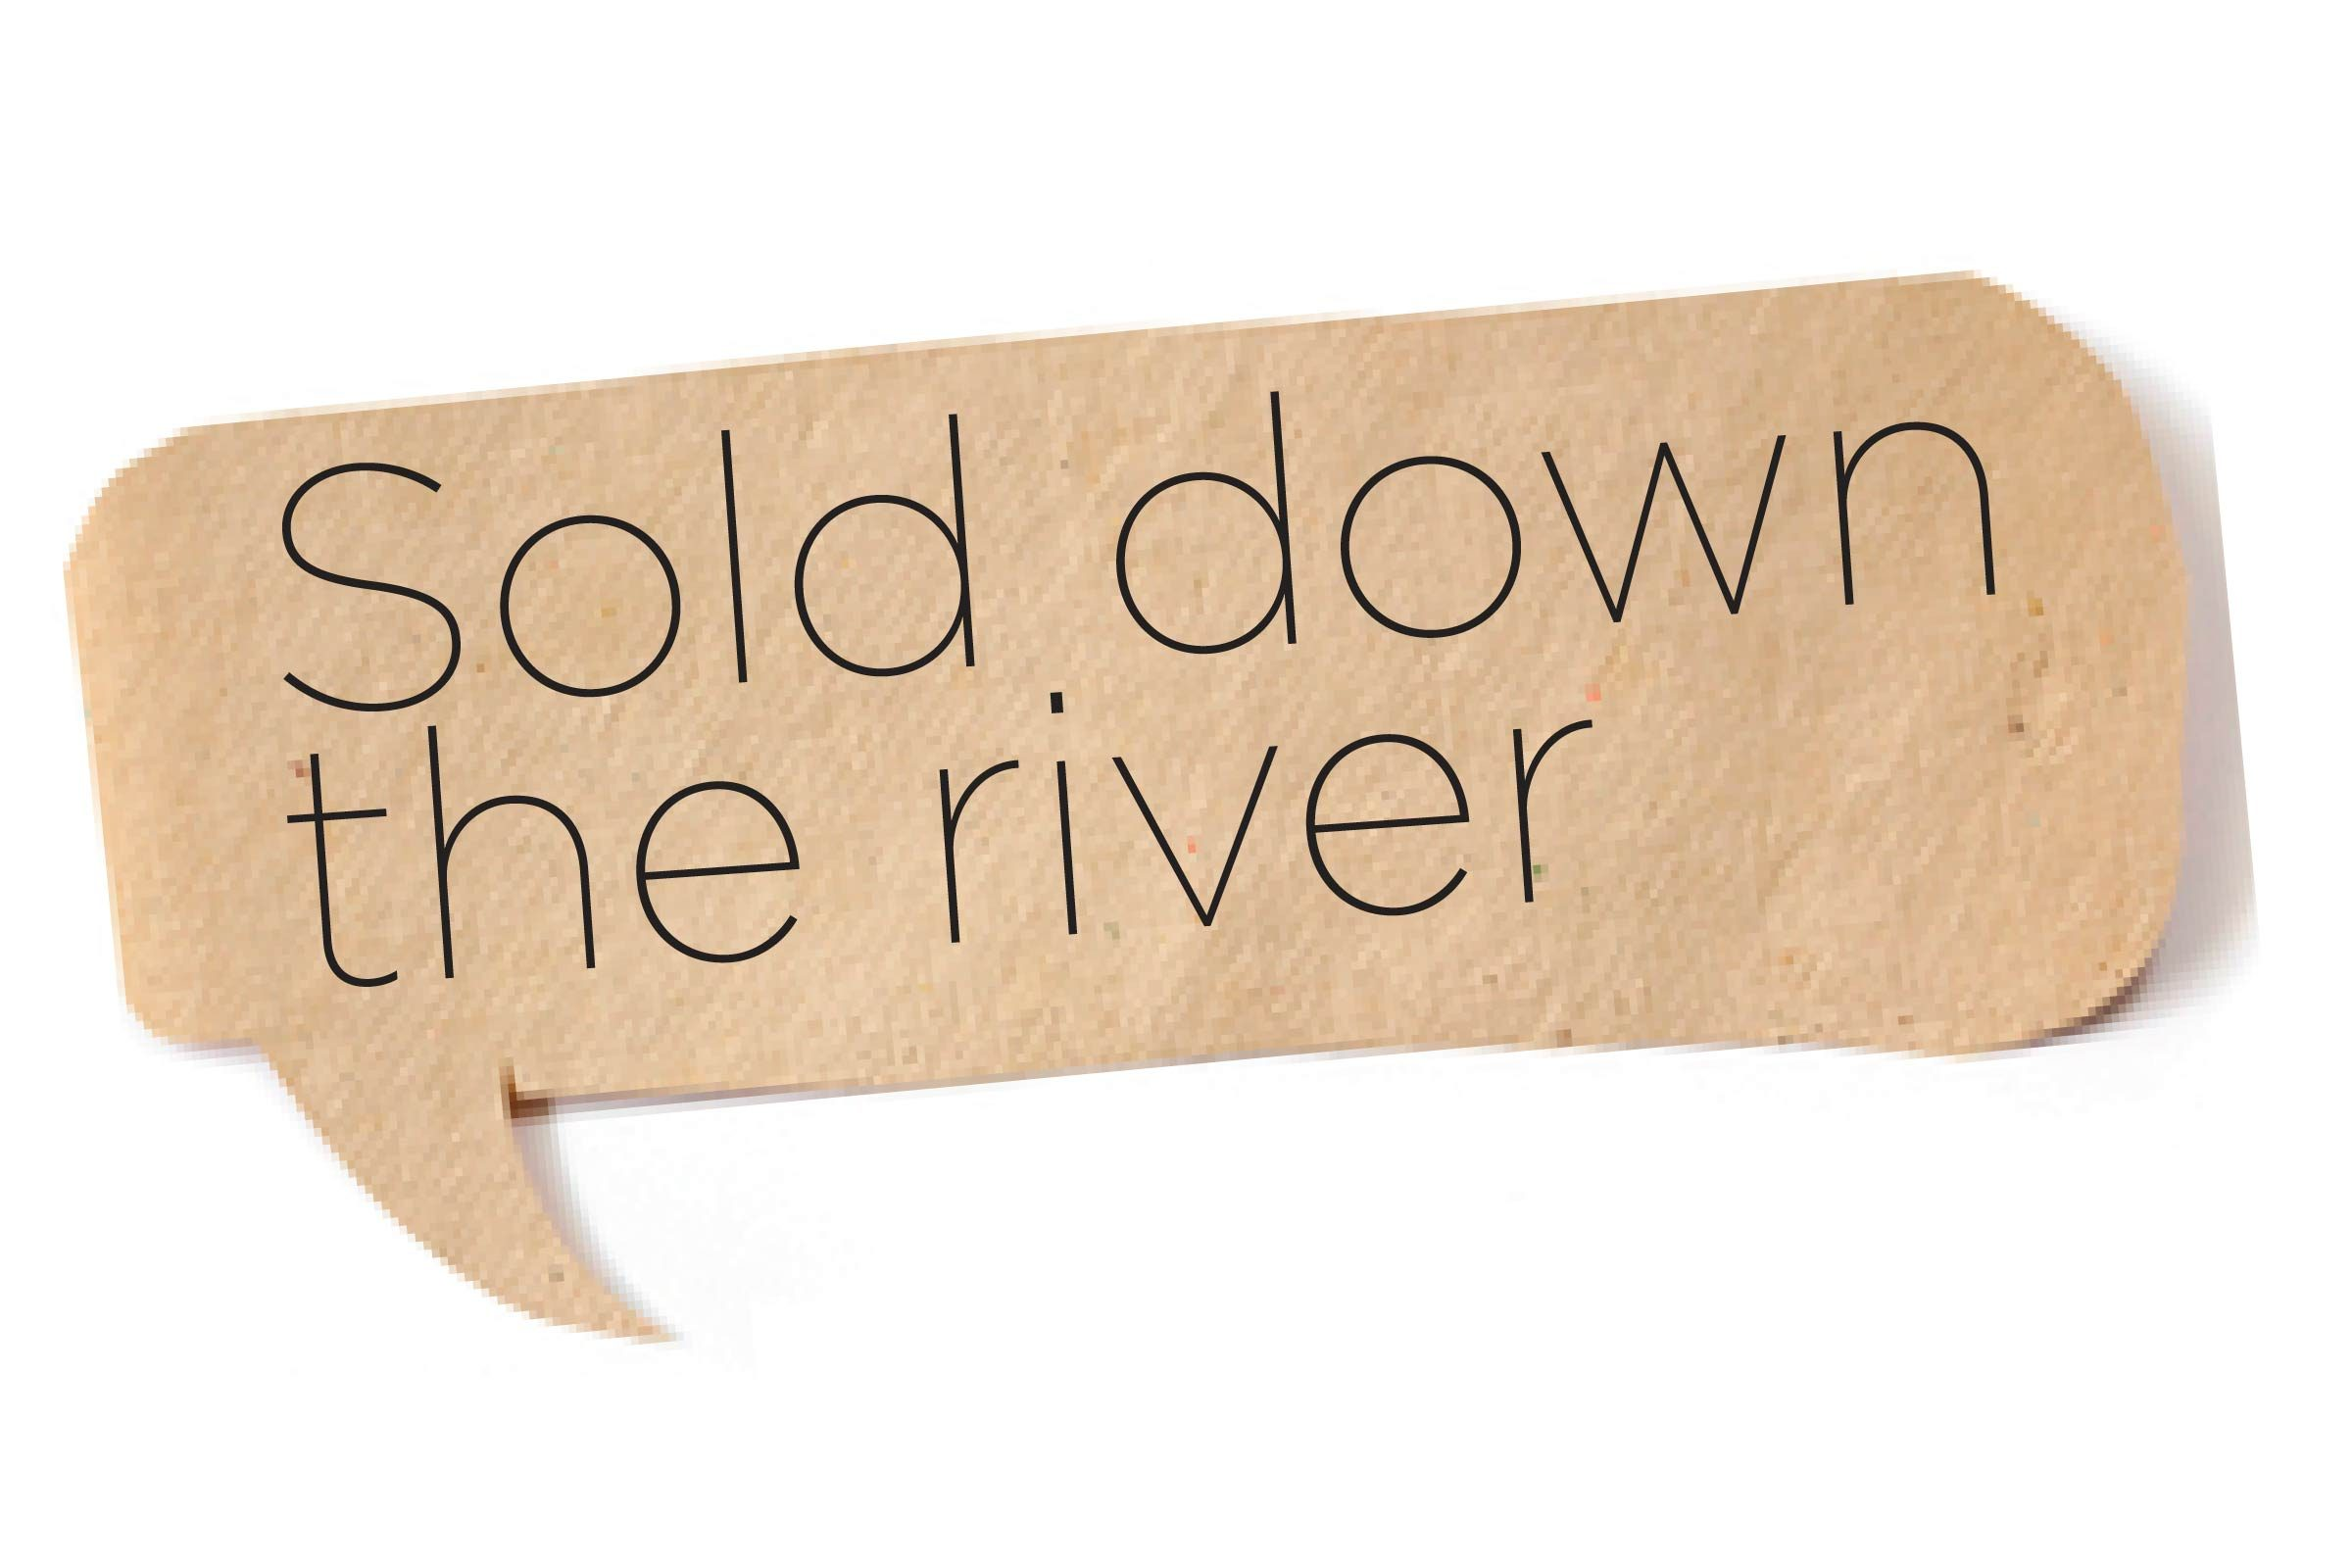 Offensive words - Sold down the river